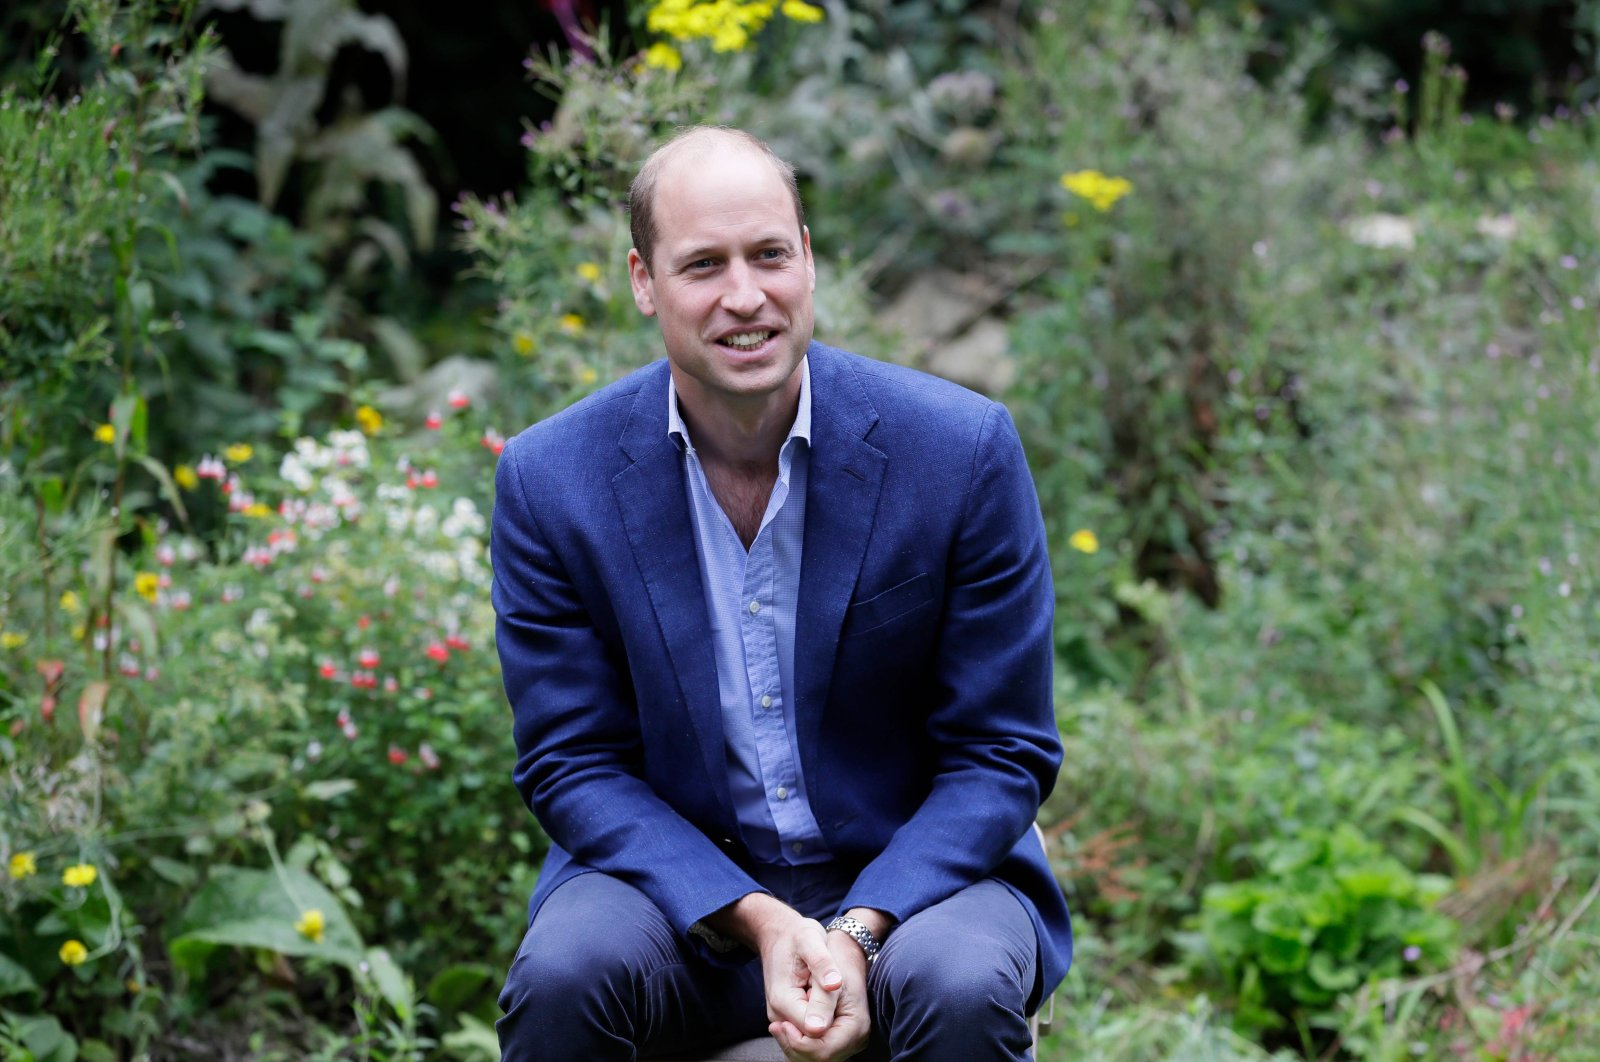 Prince William, Duke of Cambridge, speaks with visitors at the Garden House of the Light Project in Peterborough, England, June 16, 2020. (AFP Photo)